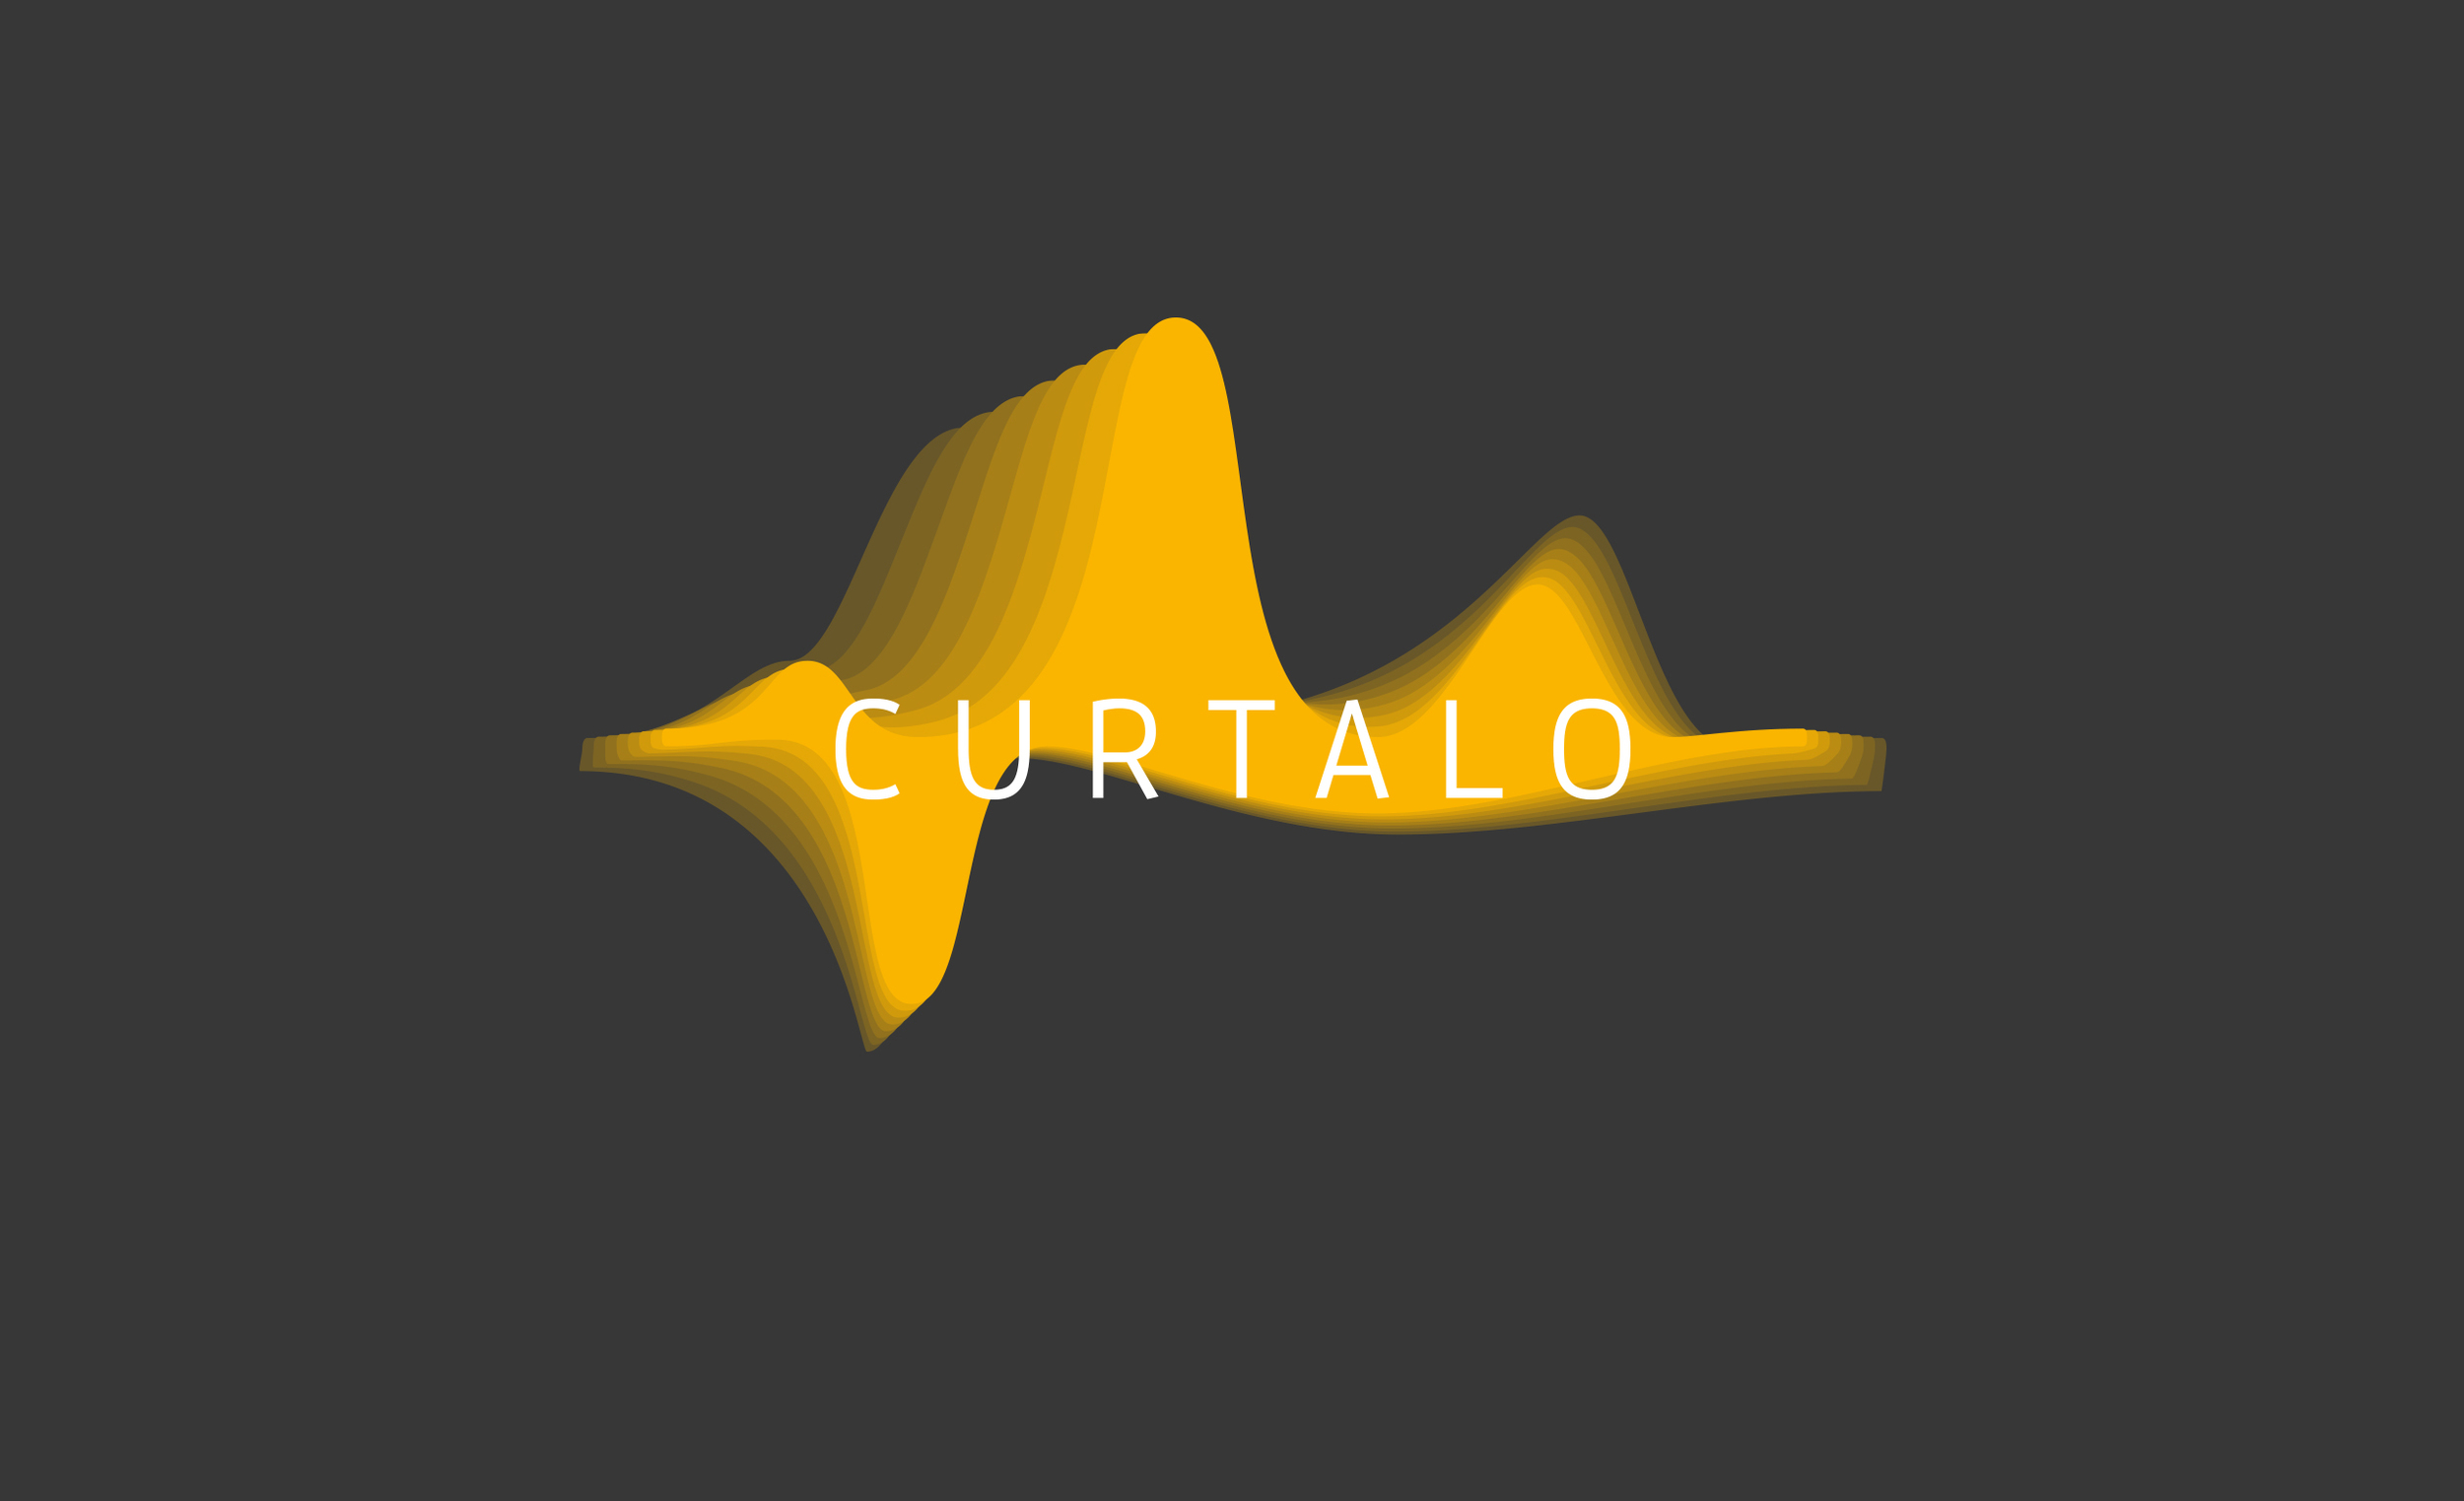 curtalo-animation_02.jpg